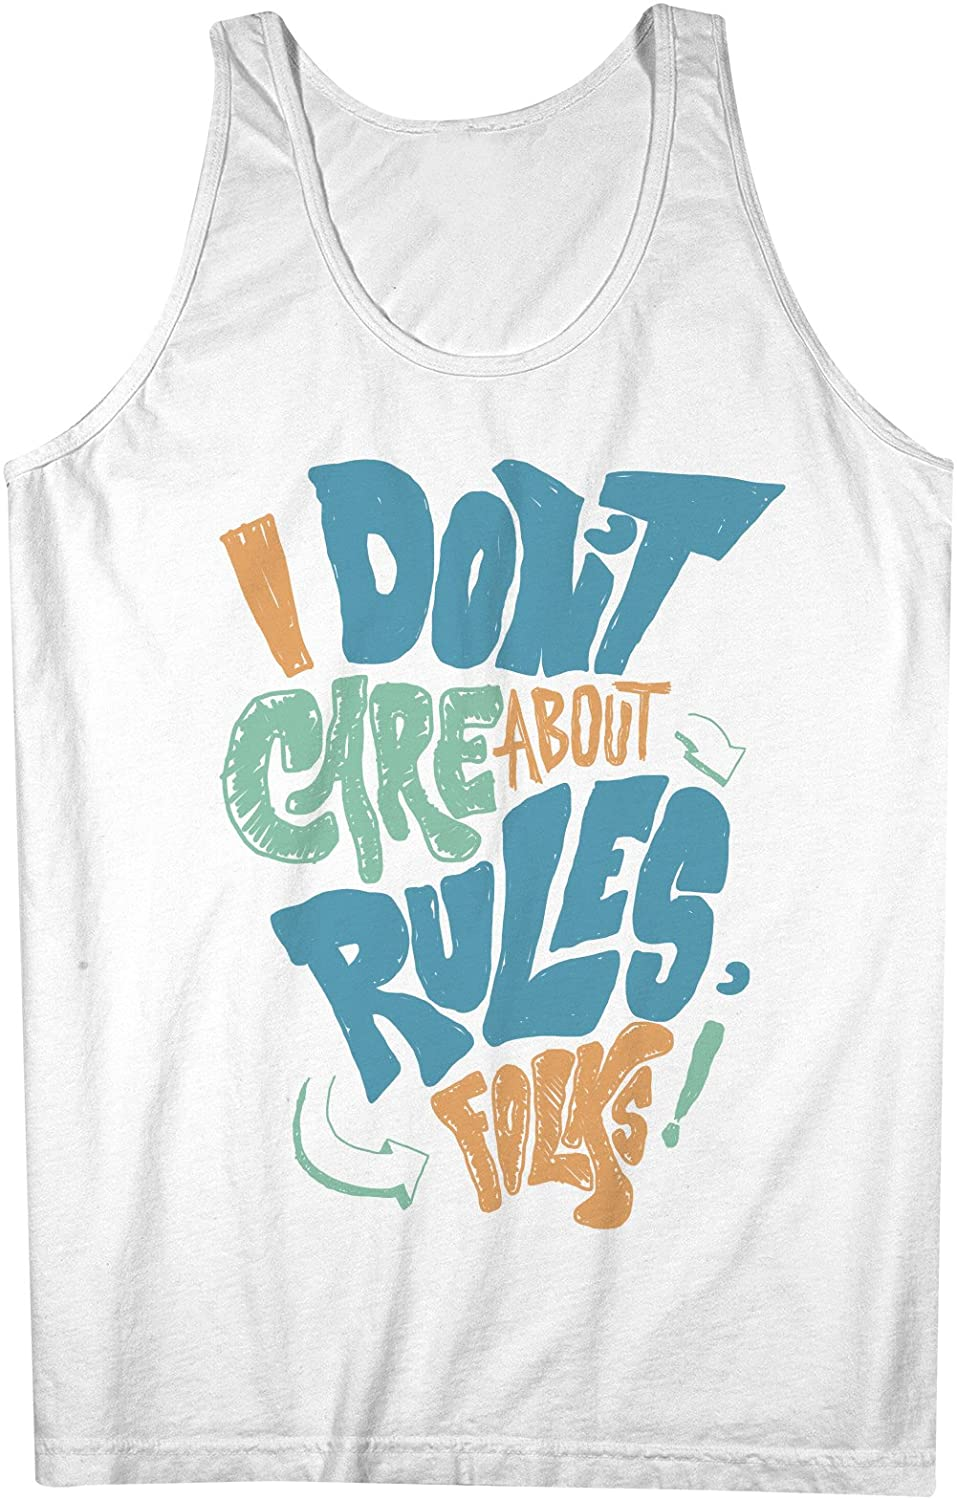 I Don't Care About Rules Folks 男性用 Tank Top Sleeveless Shirt